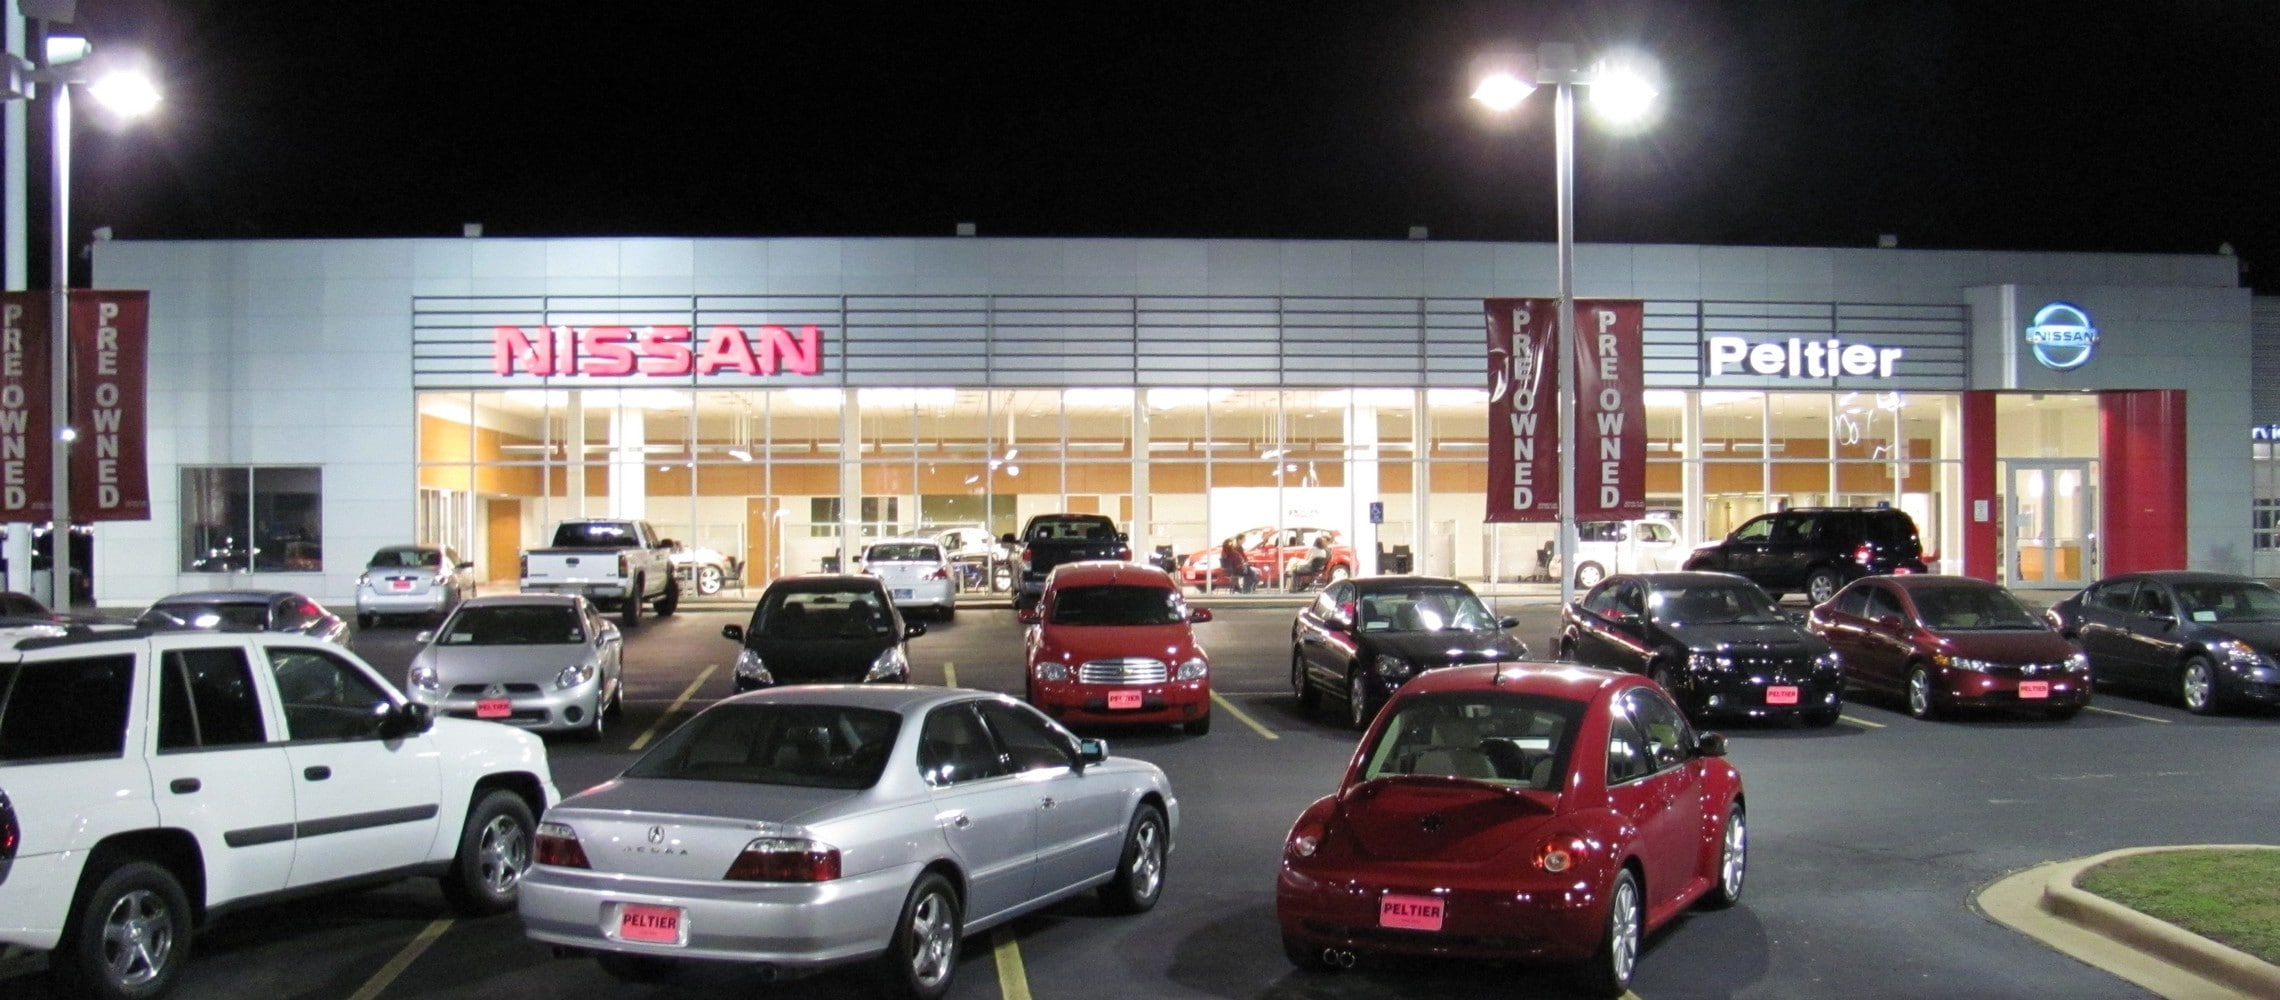 about peltier nissan tyler tx nissan dealership. Cars Review. Best American Auto & Cars Review